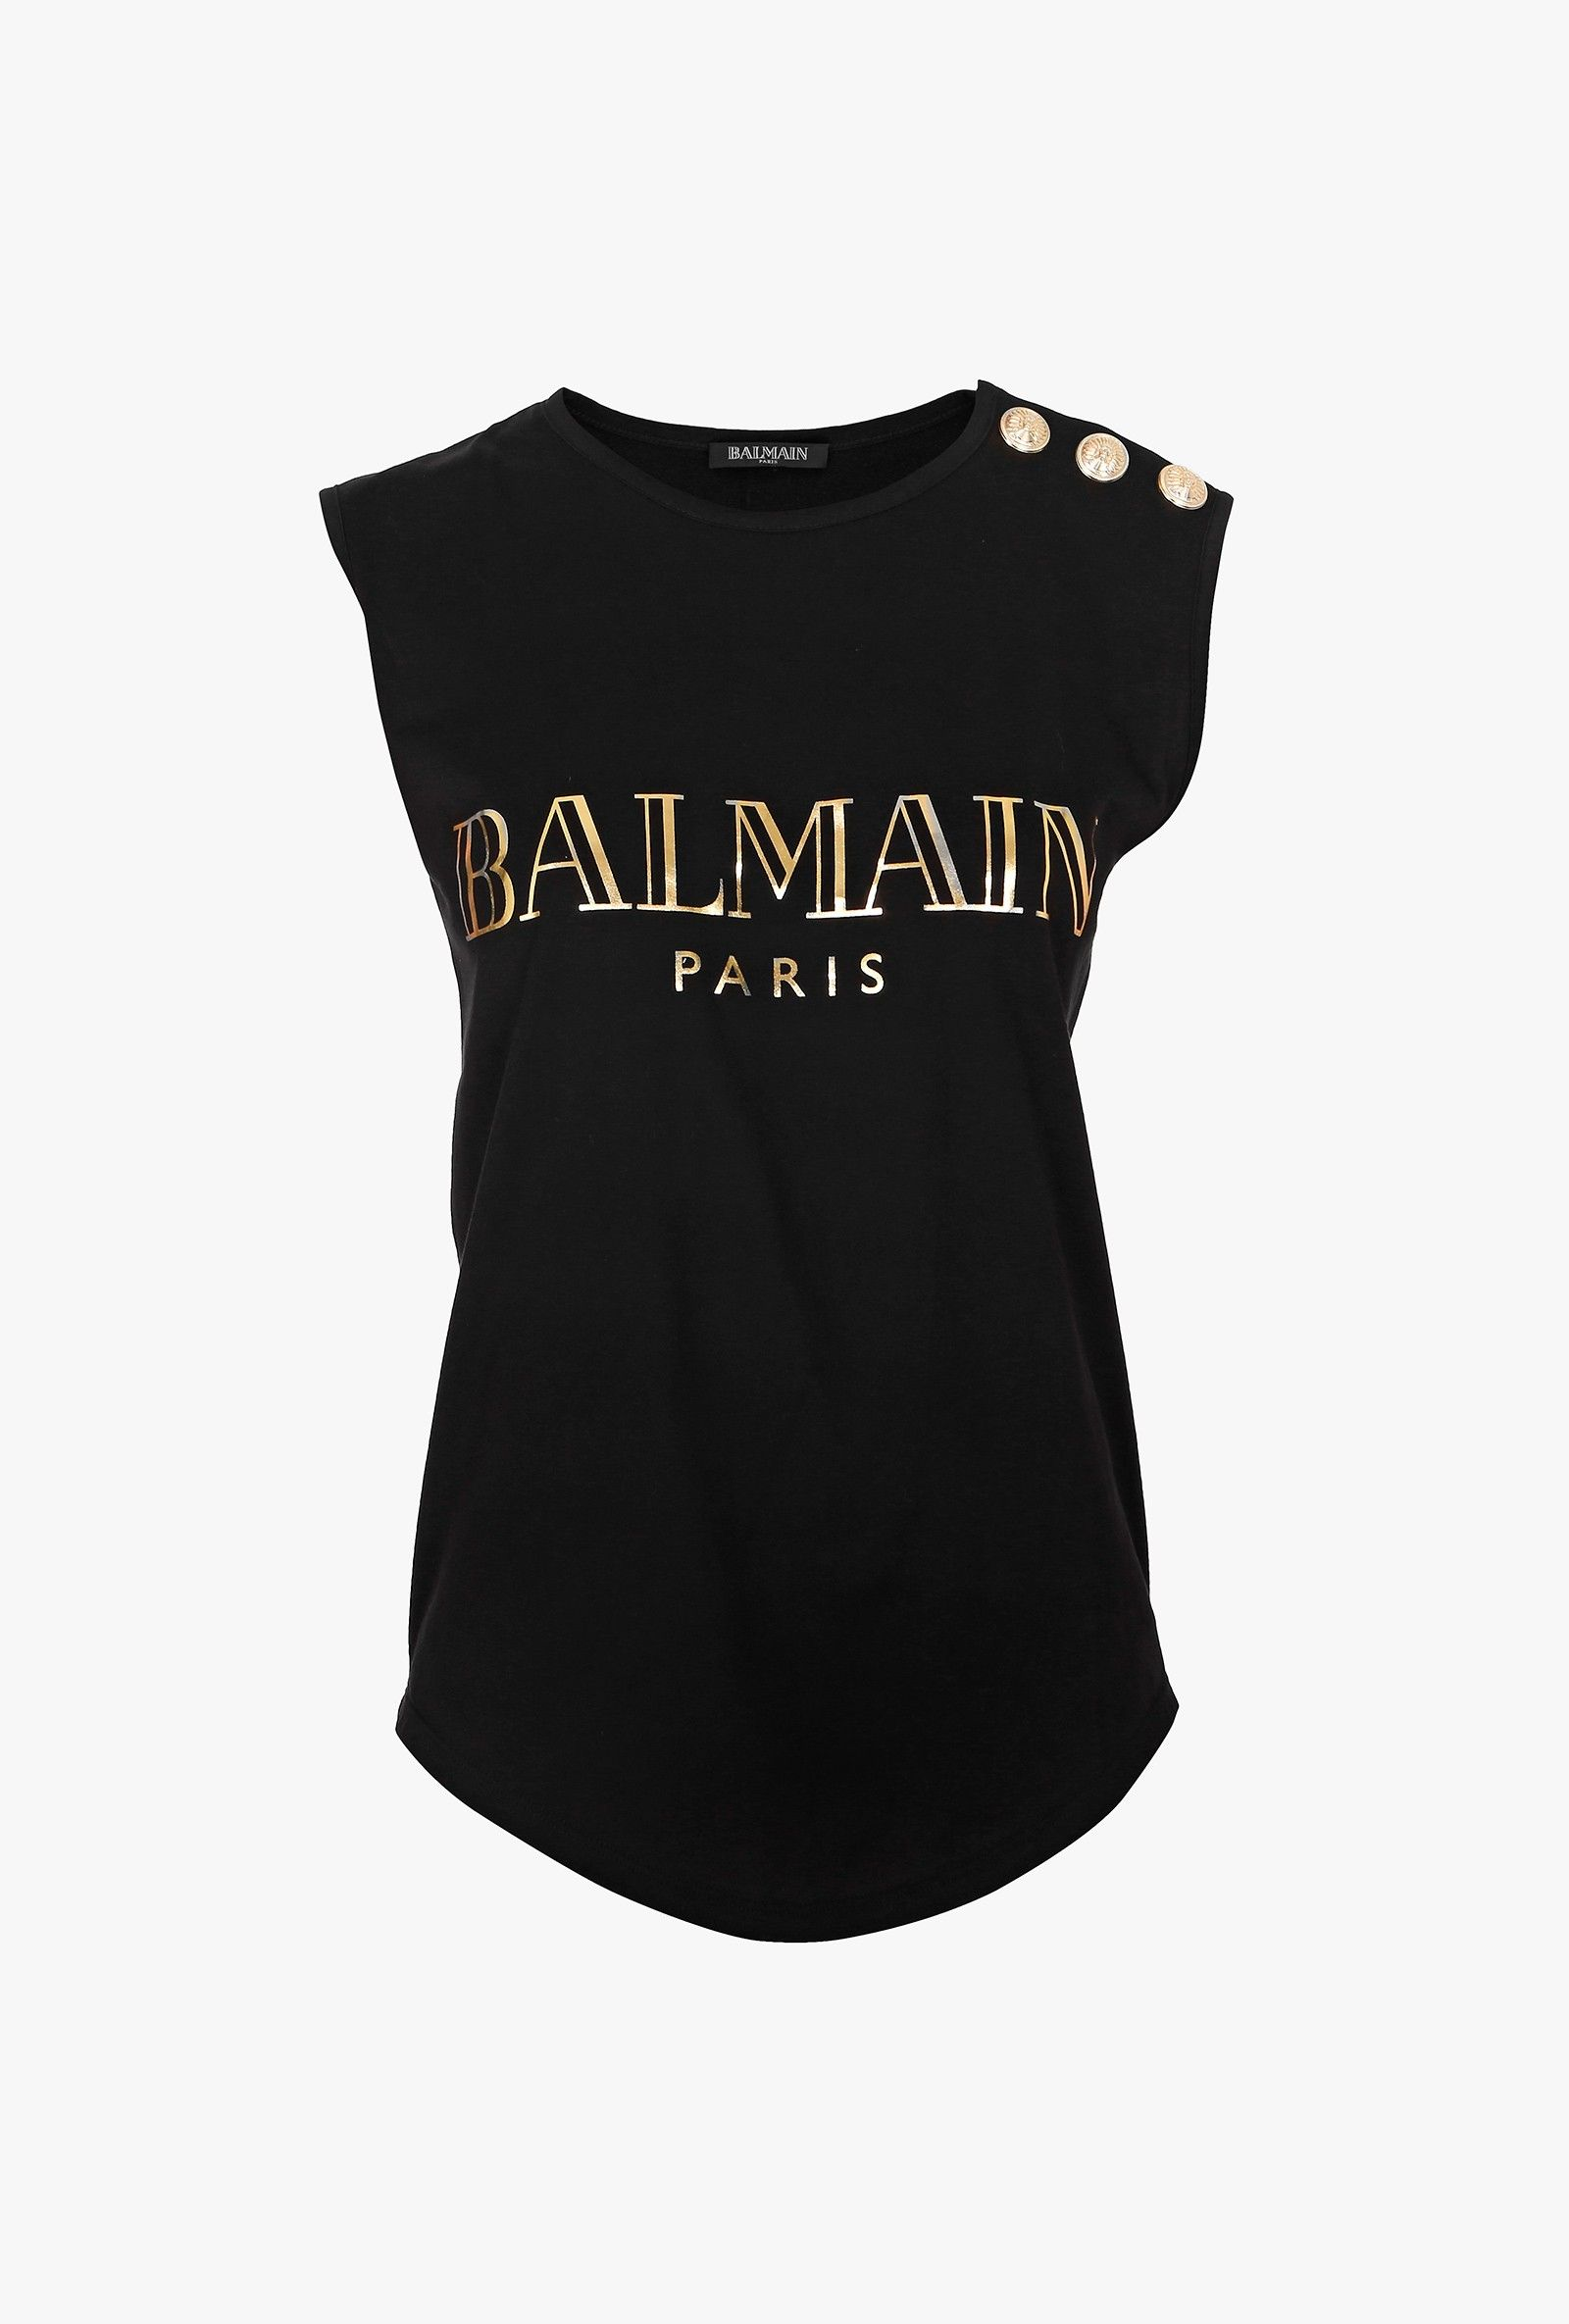 a0aed4a0 Balmain - Sleeveless gold-tone silkscreen logo cotton T-shirt - Women's tops